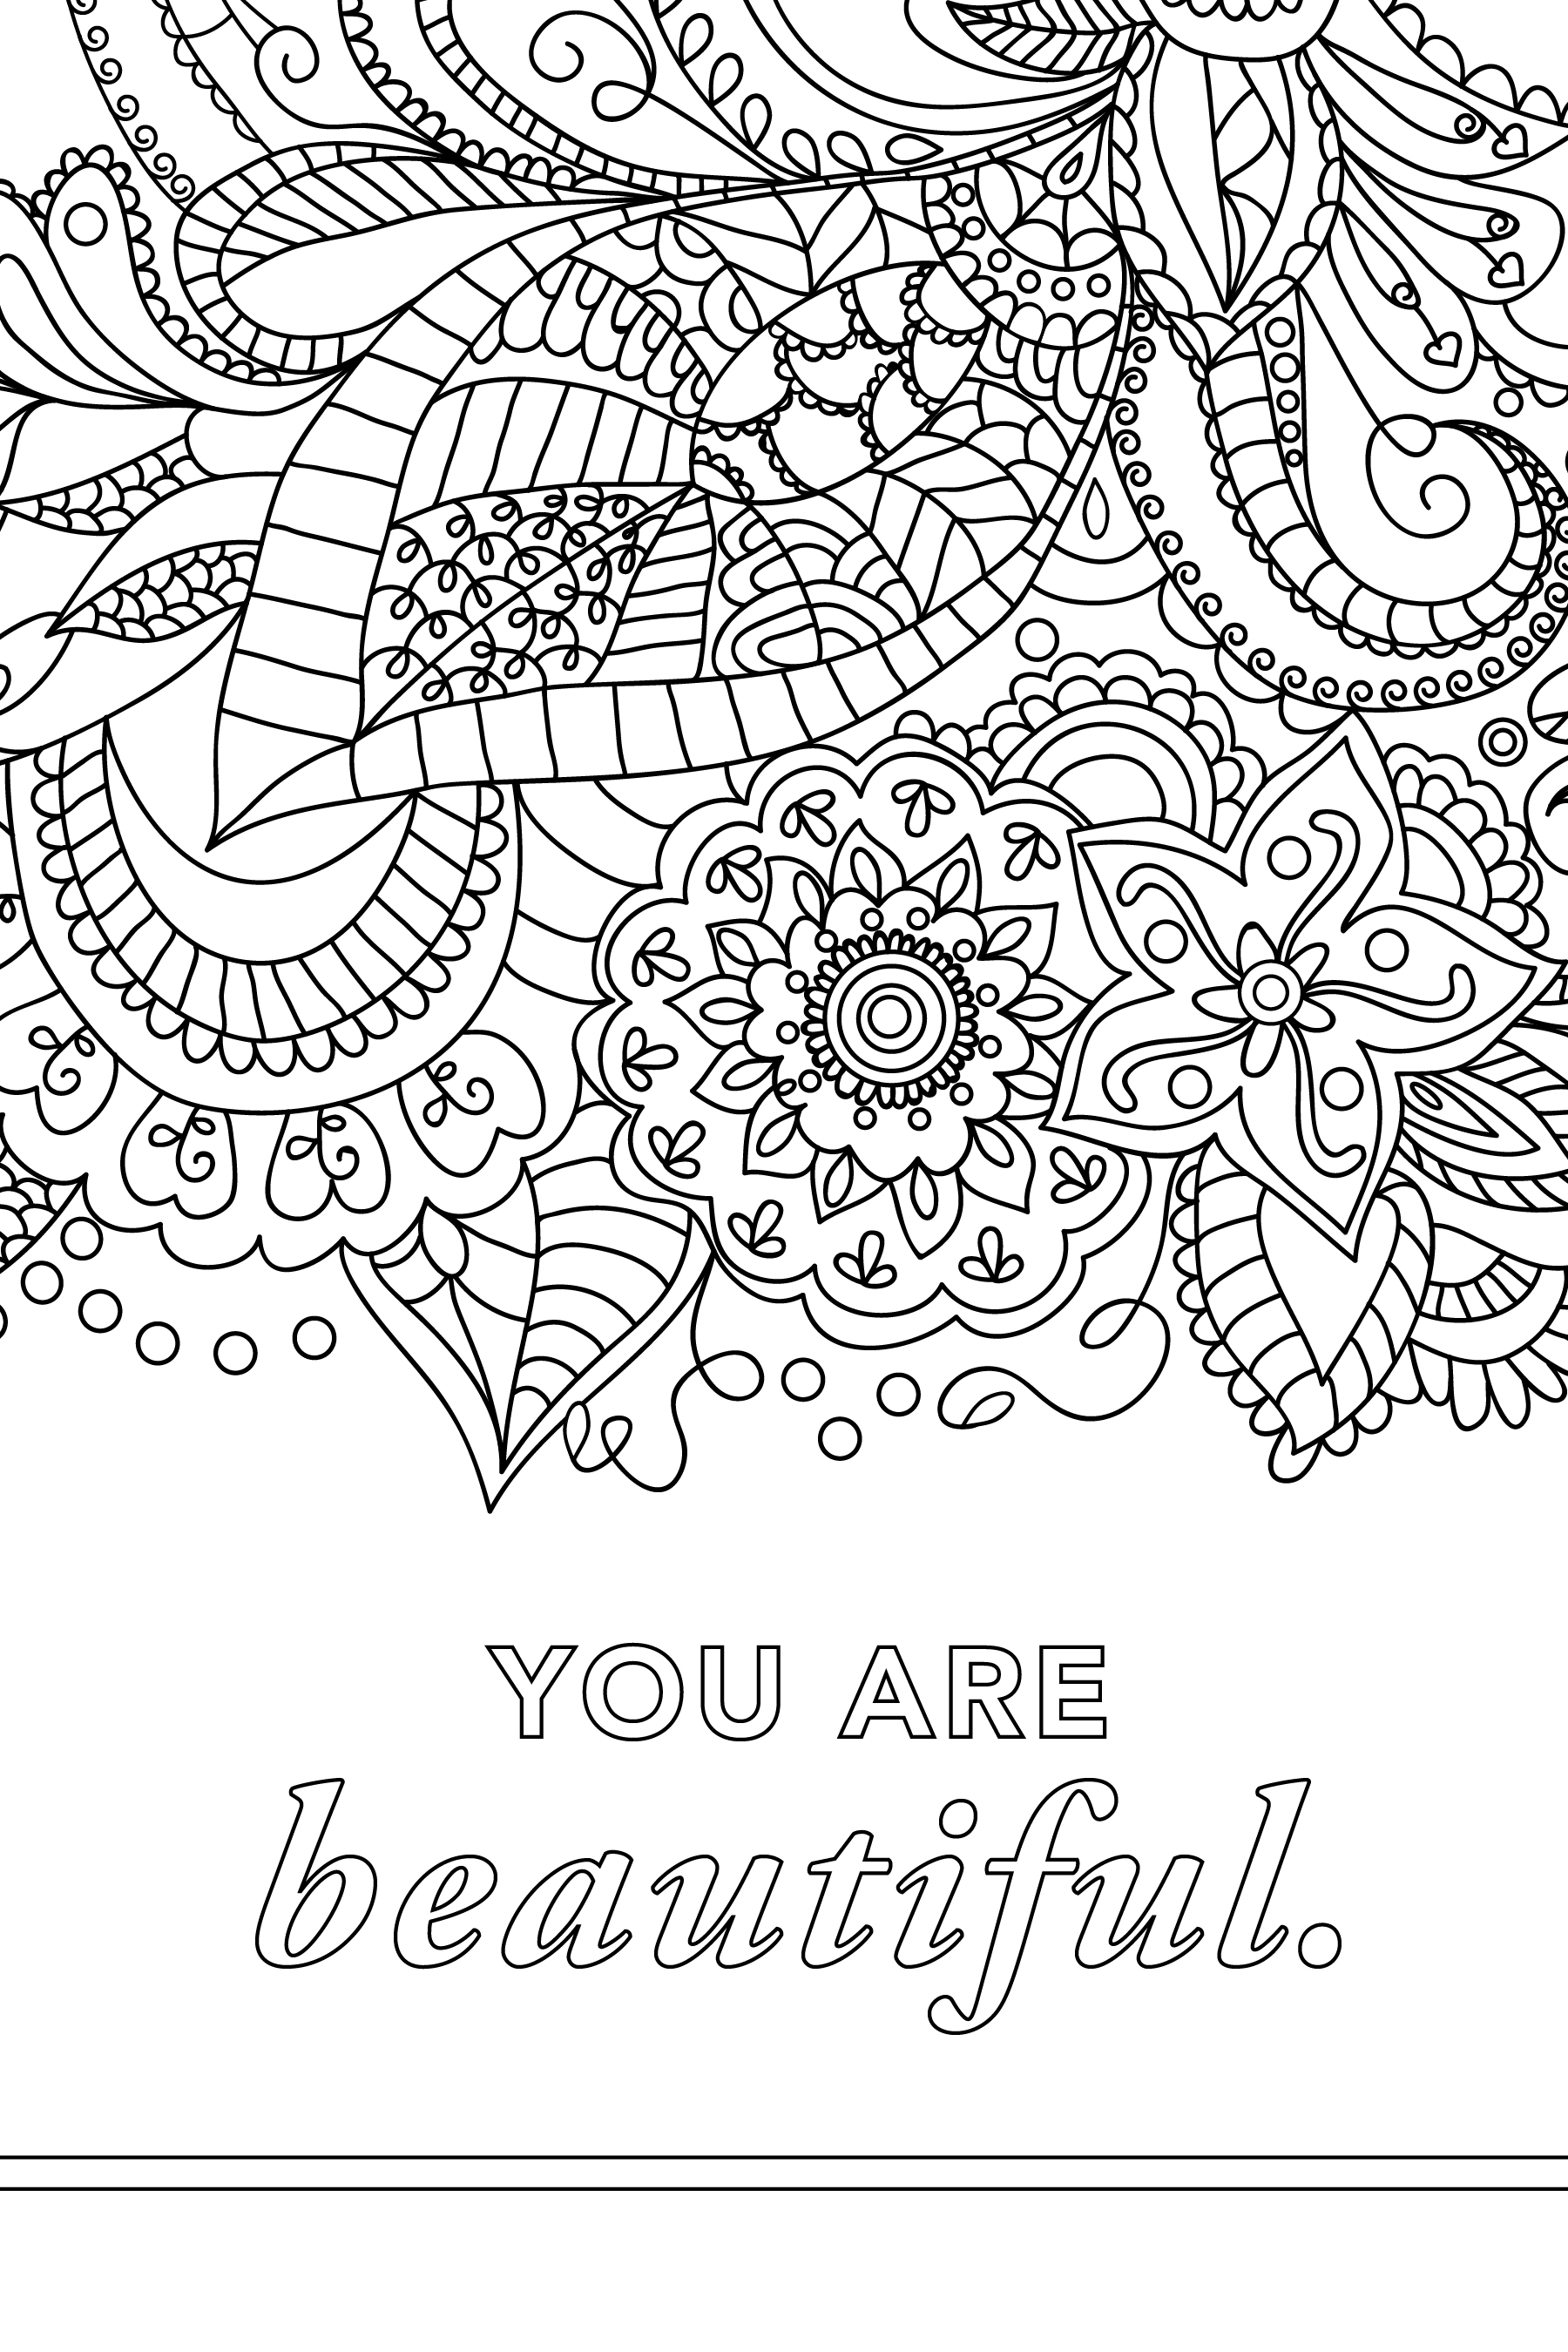 Empowering Coloring Pages